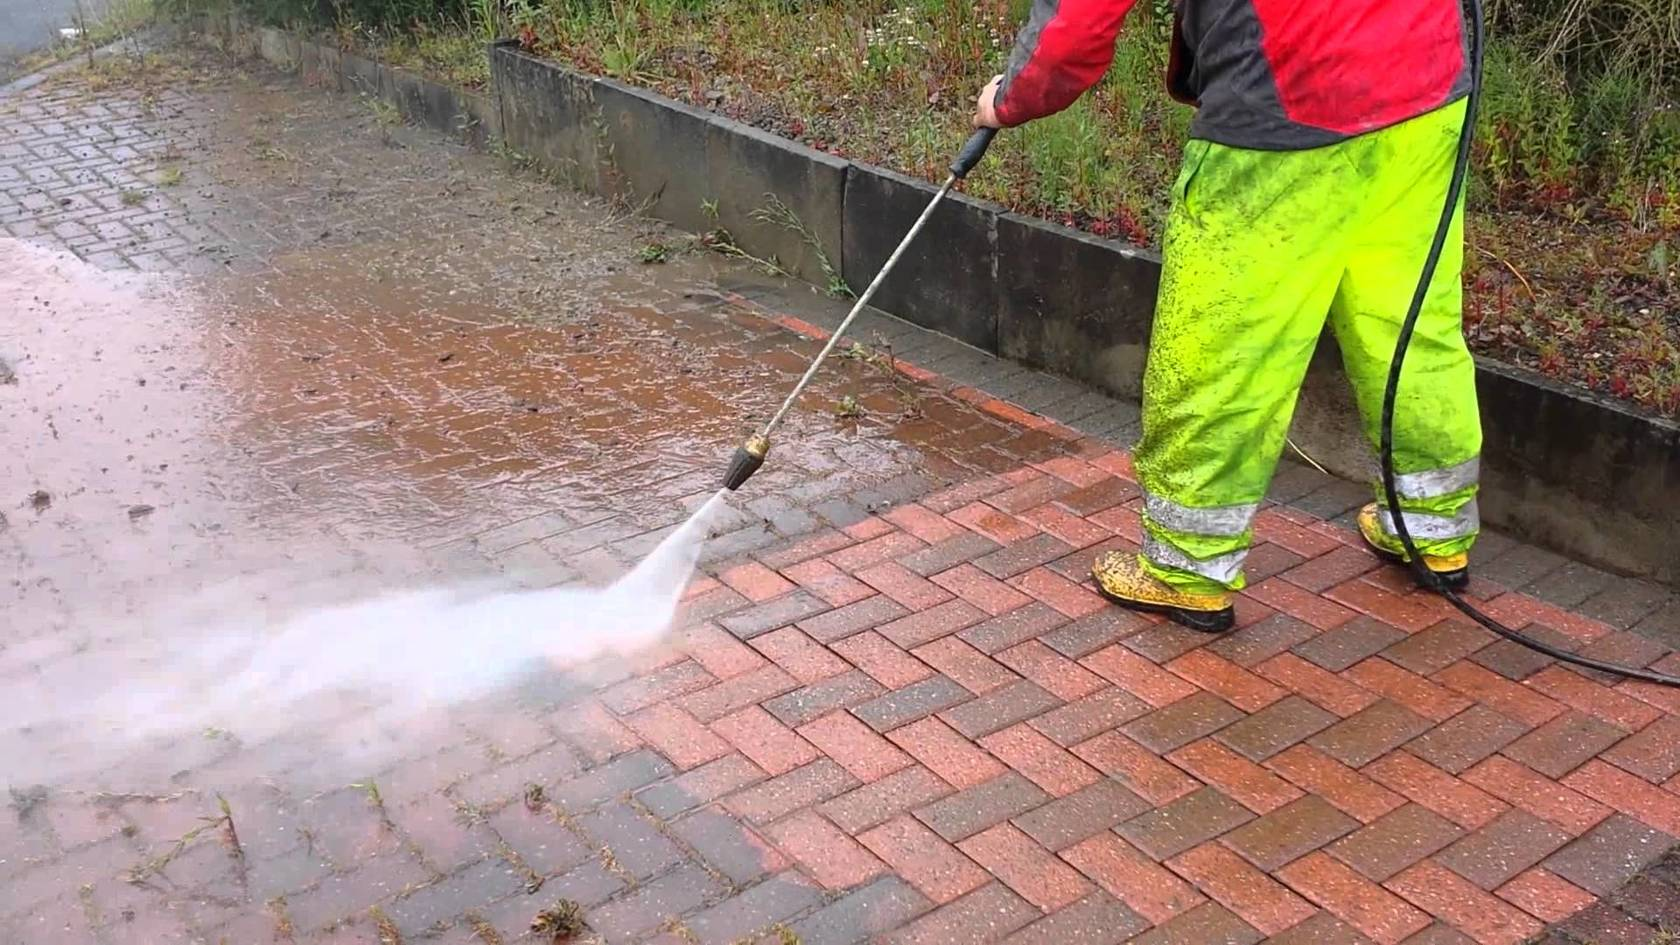 Cleaning the concrete and paving in Thailand | The Thaiger